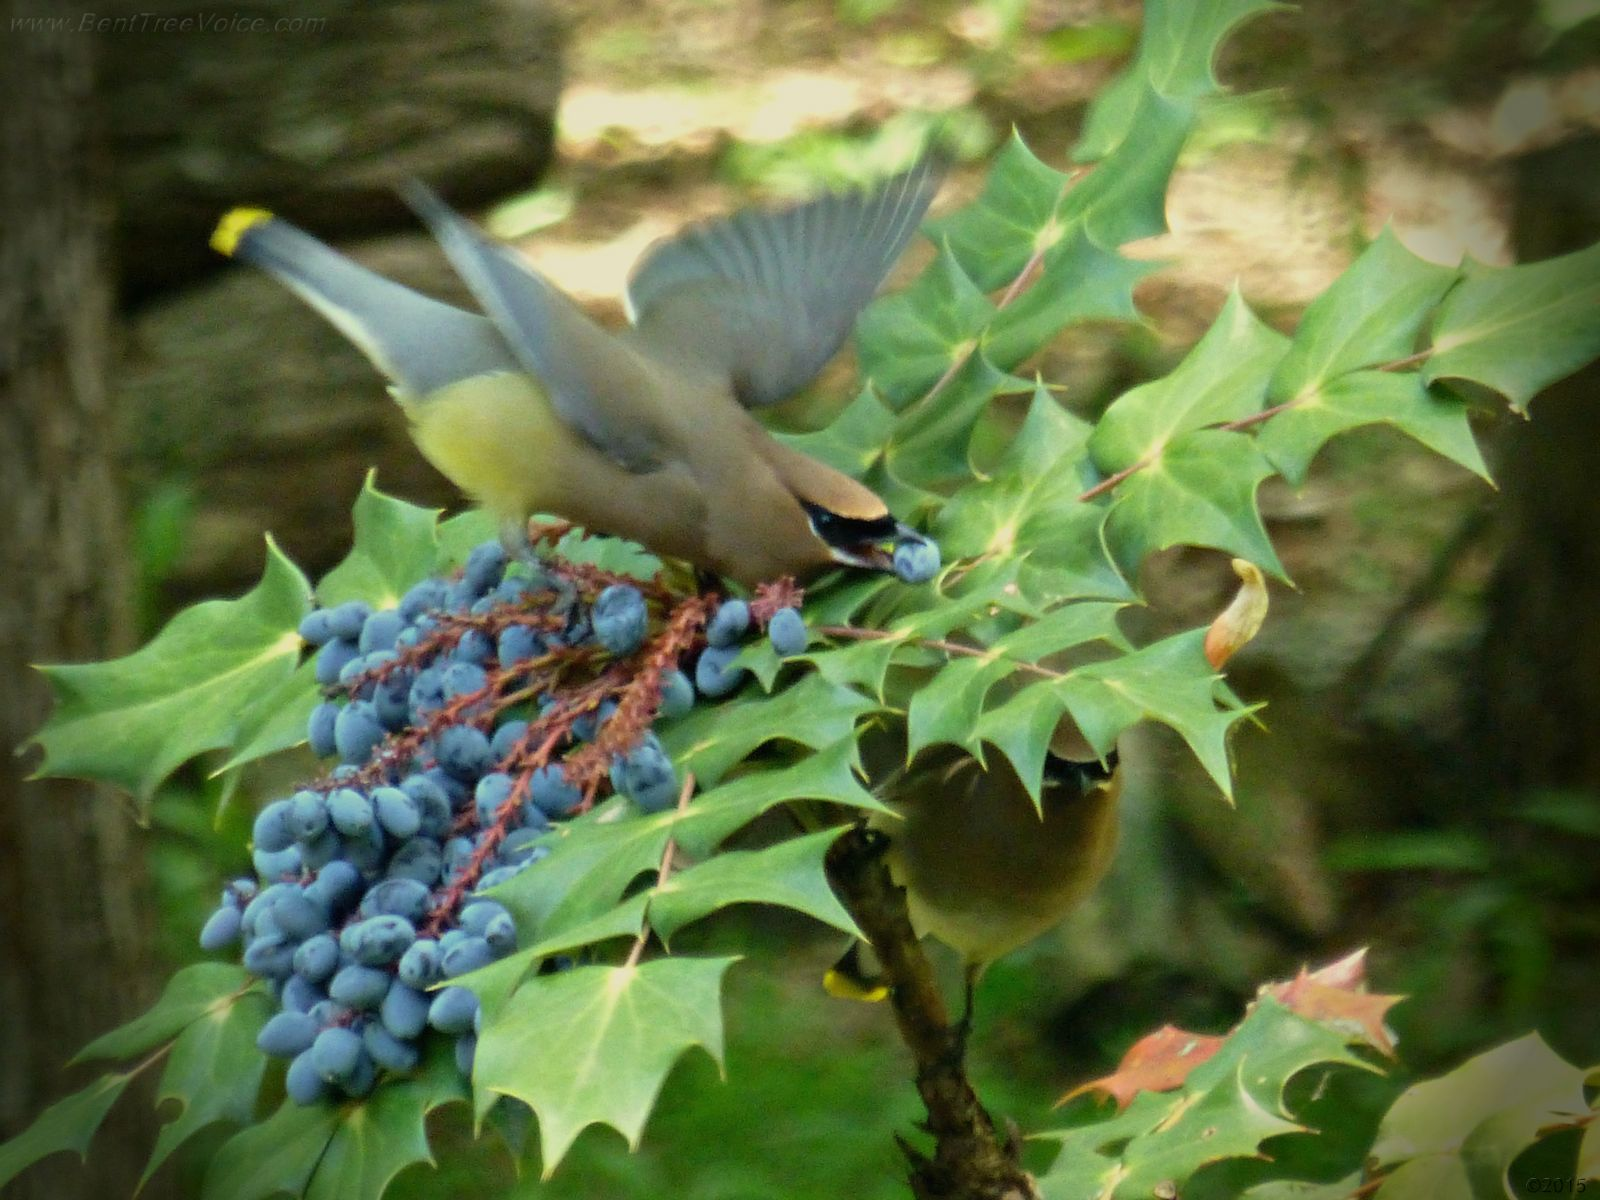 May 14, 2015 - Cedar Waxwing with mahonia berry